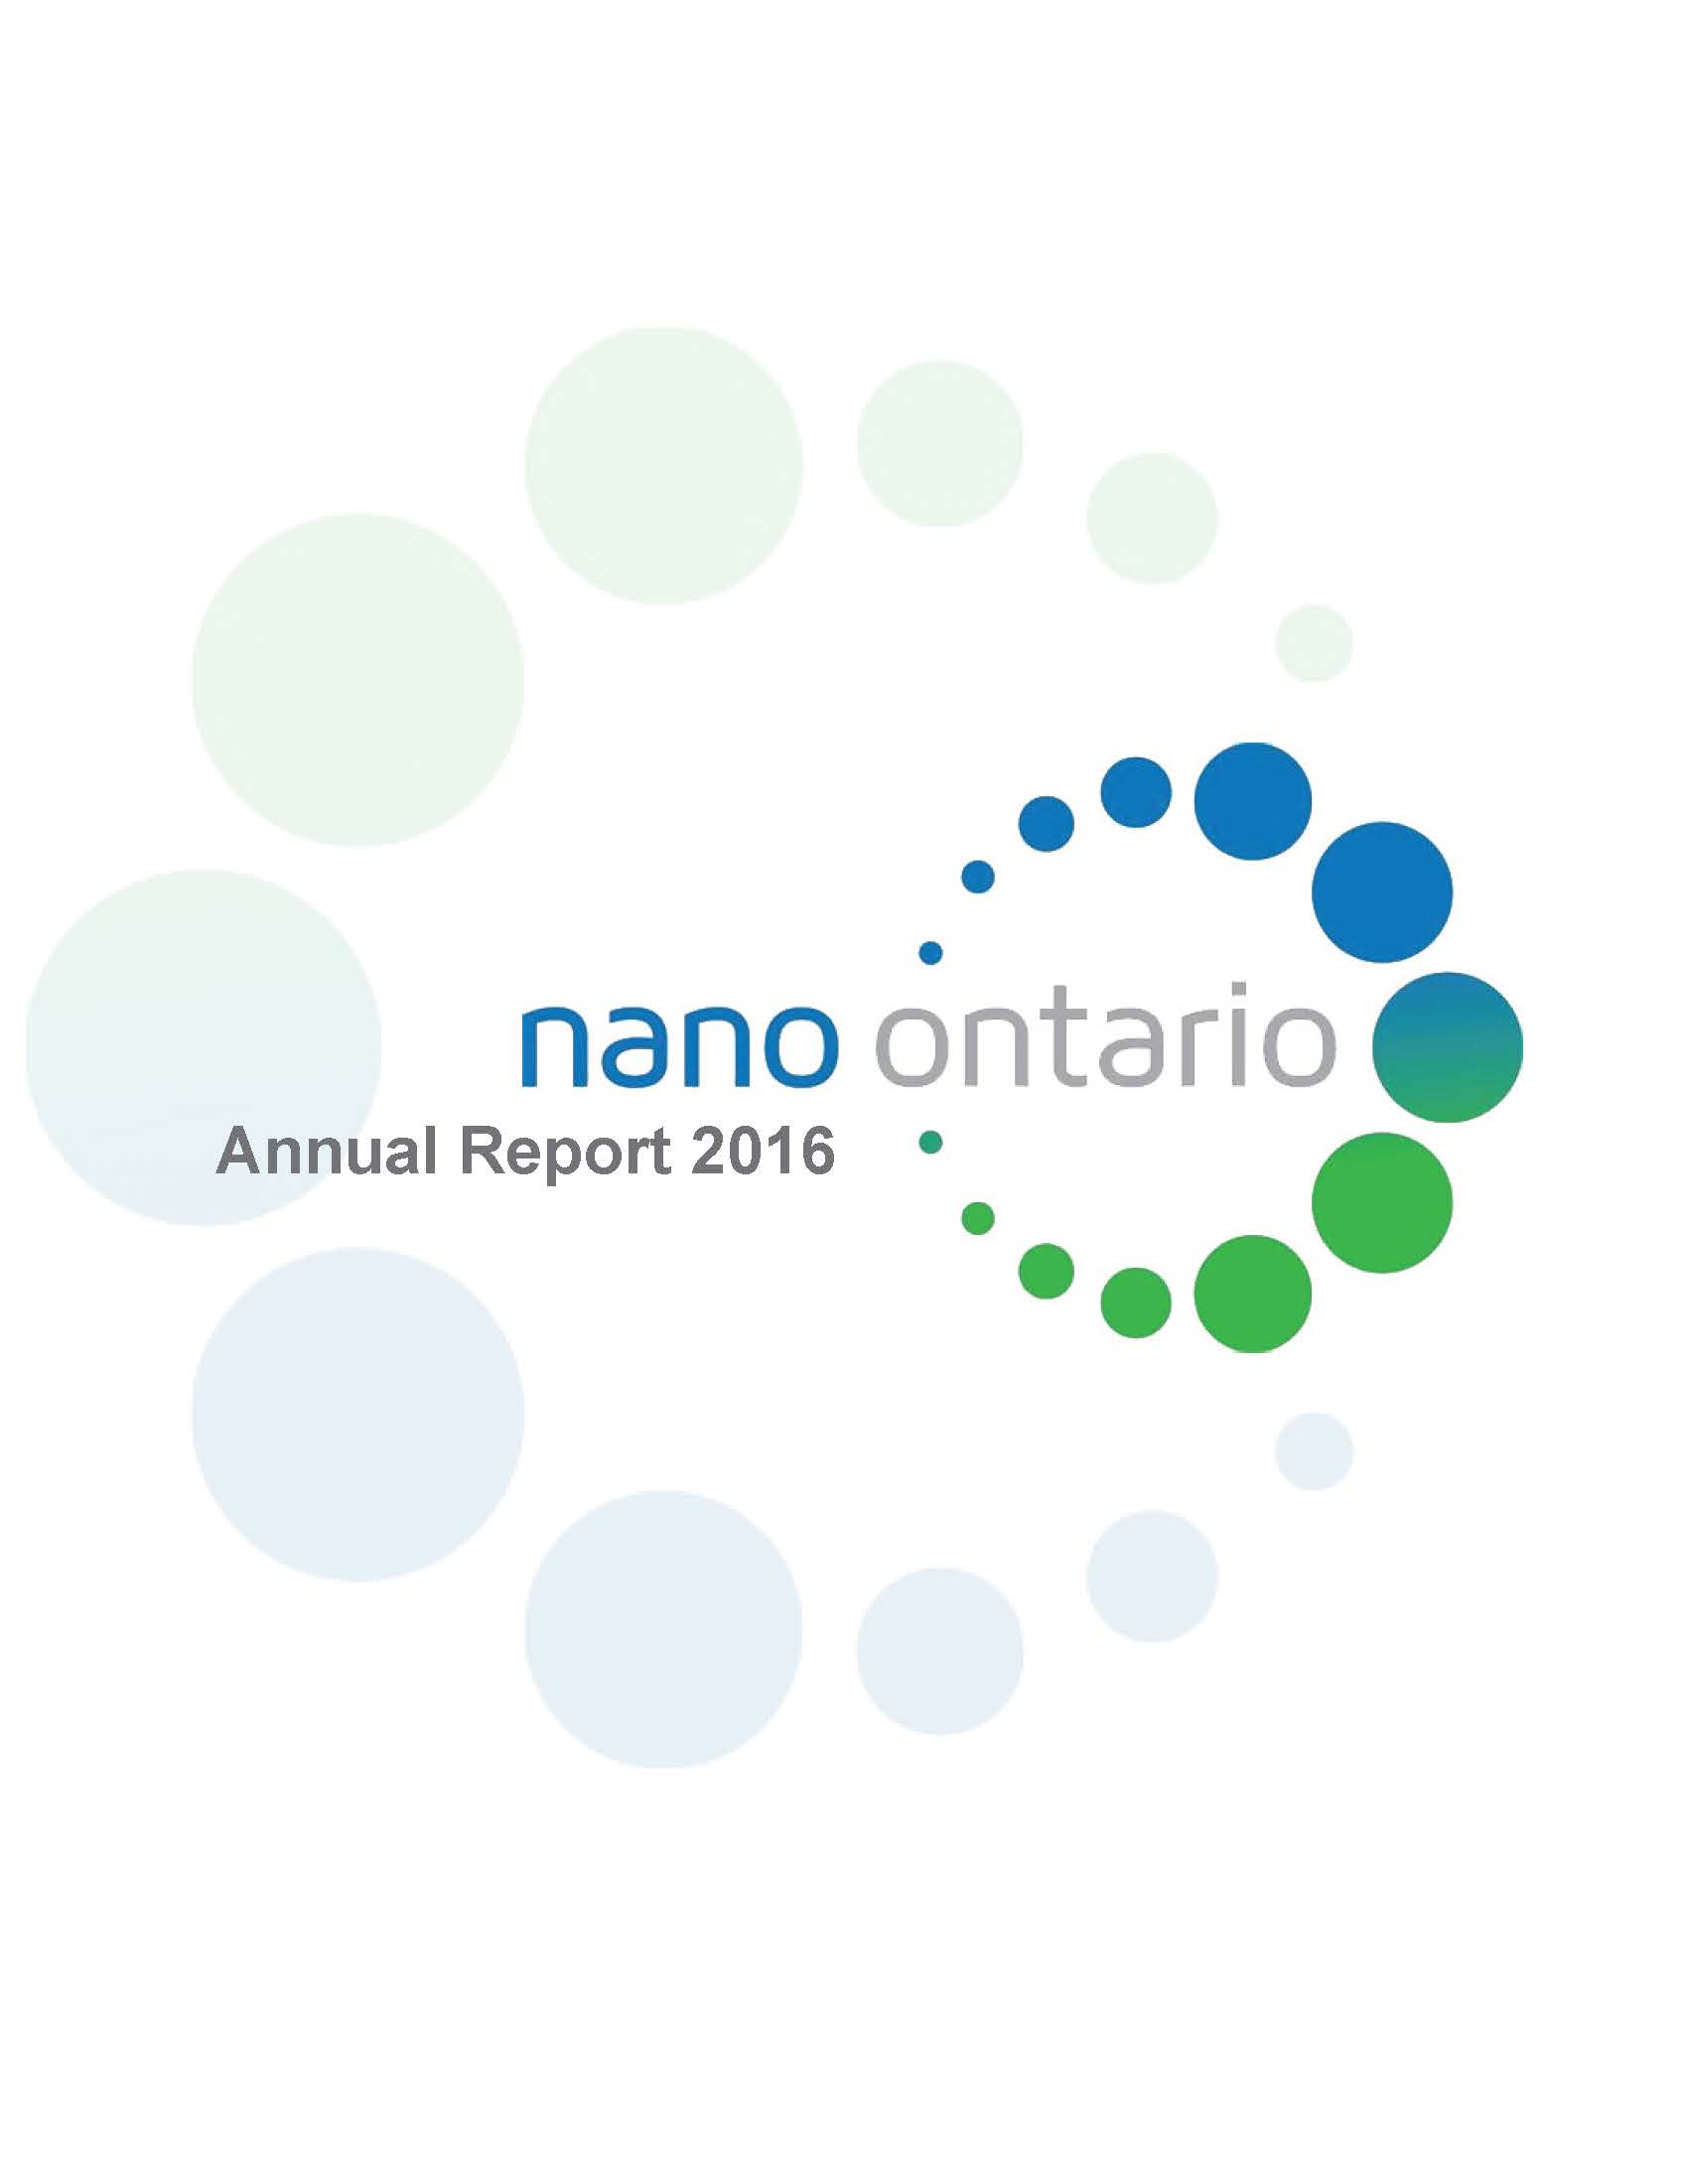 NanoOntario Annual Report 2018 (Year 2017)